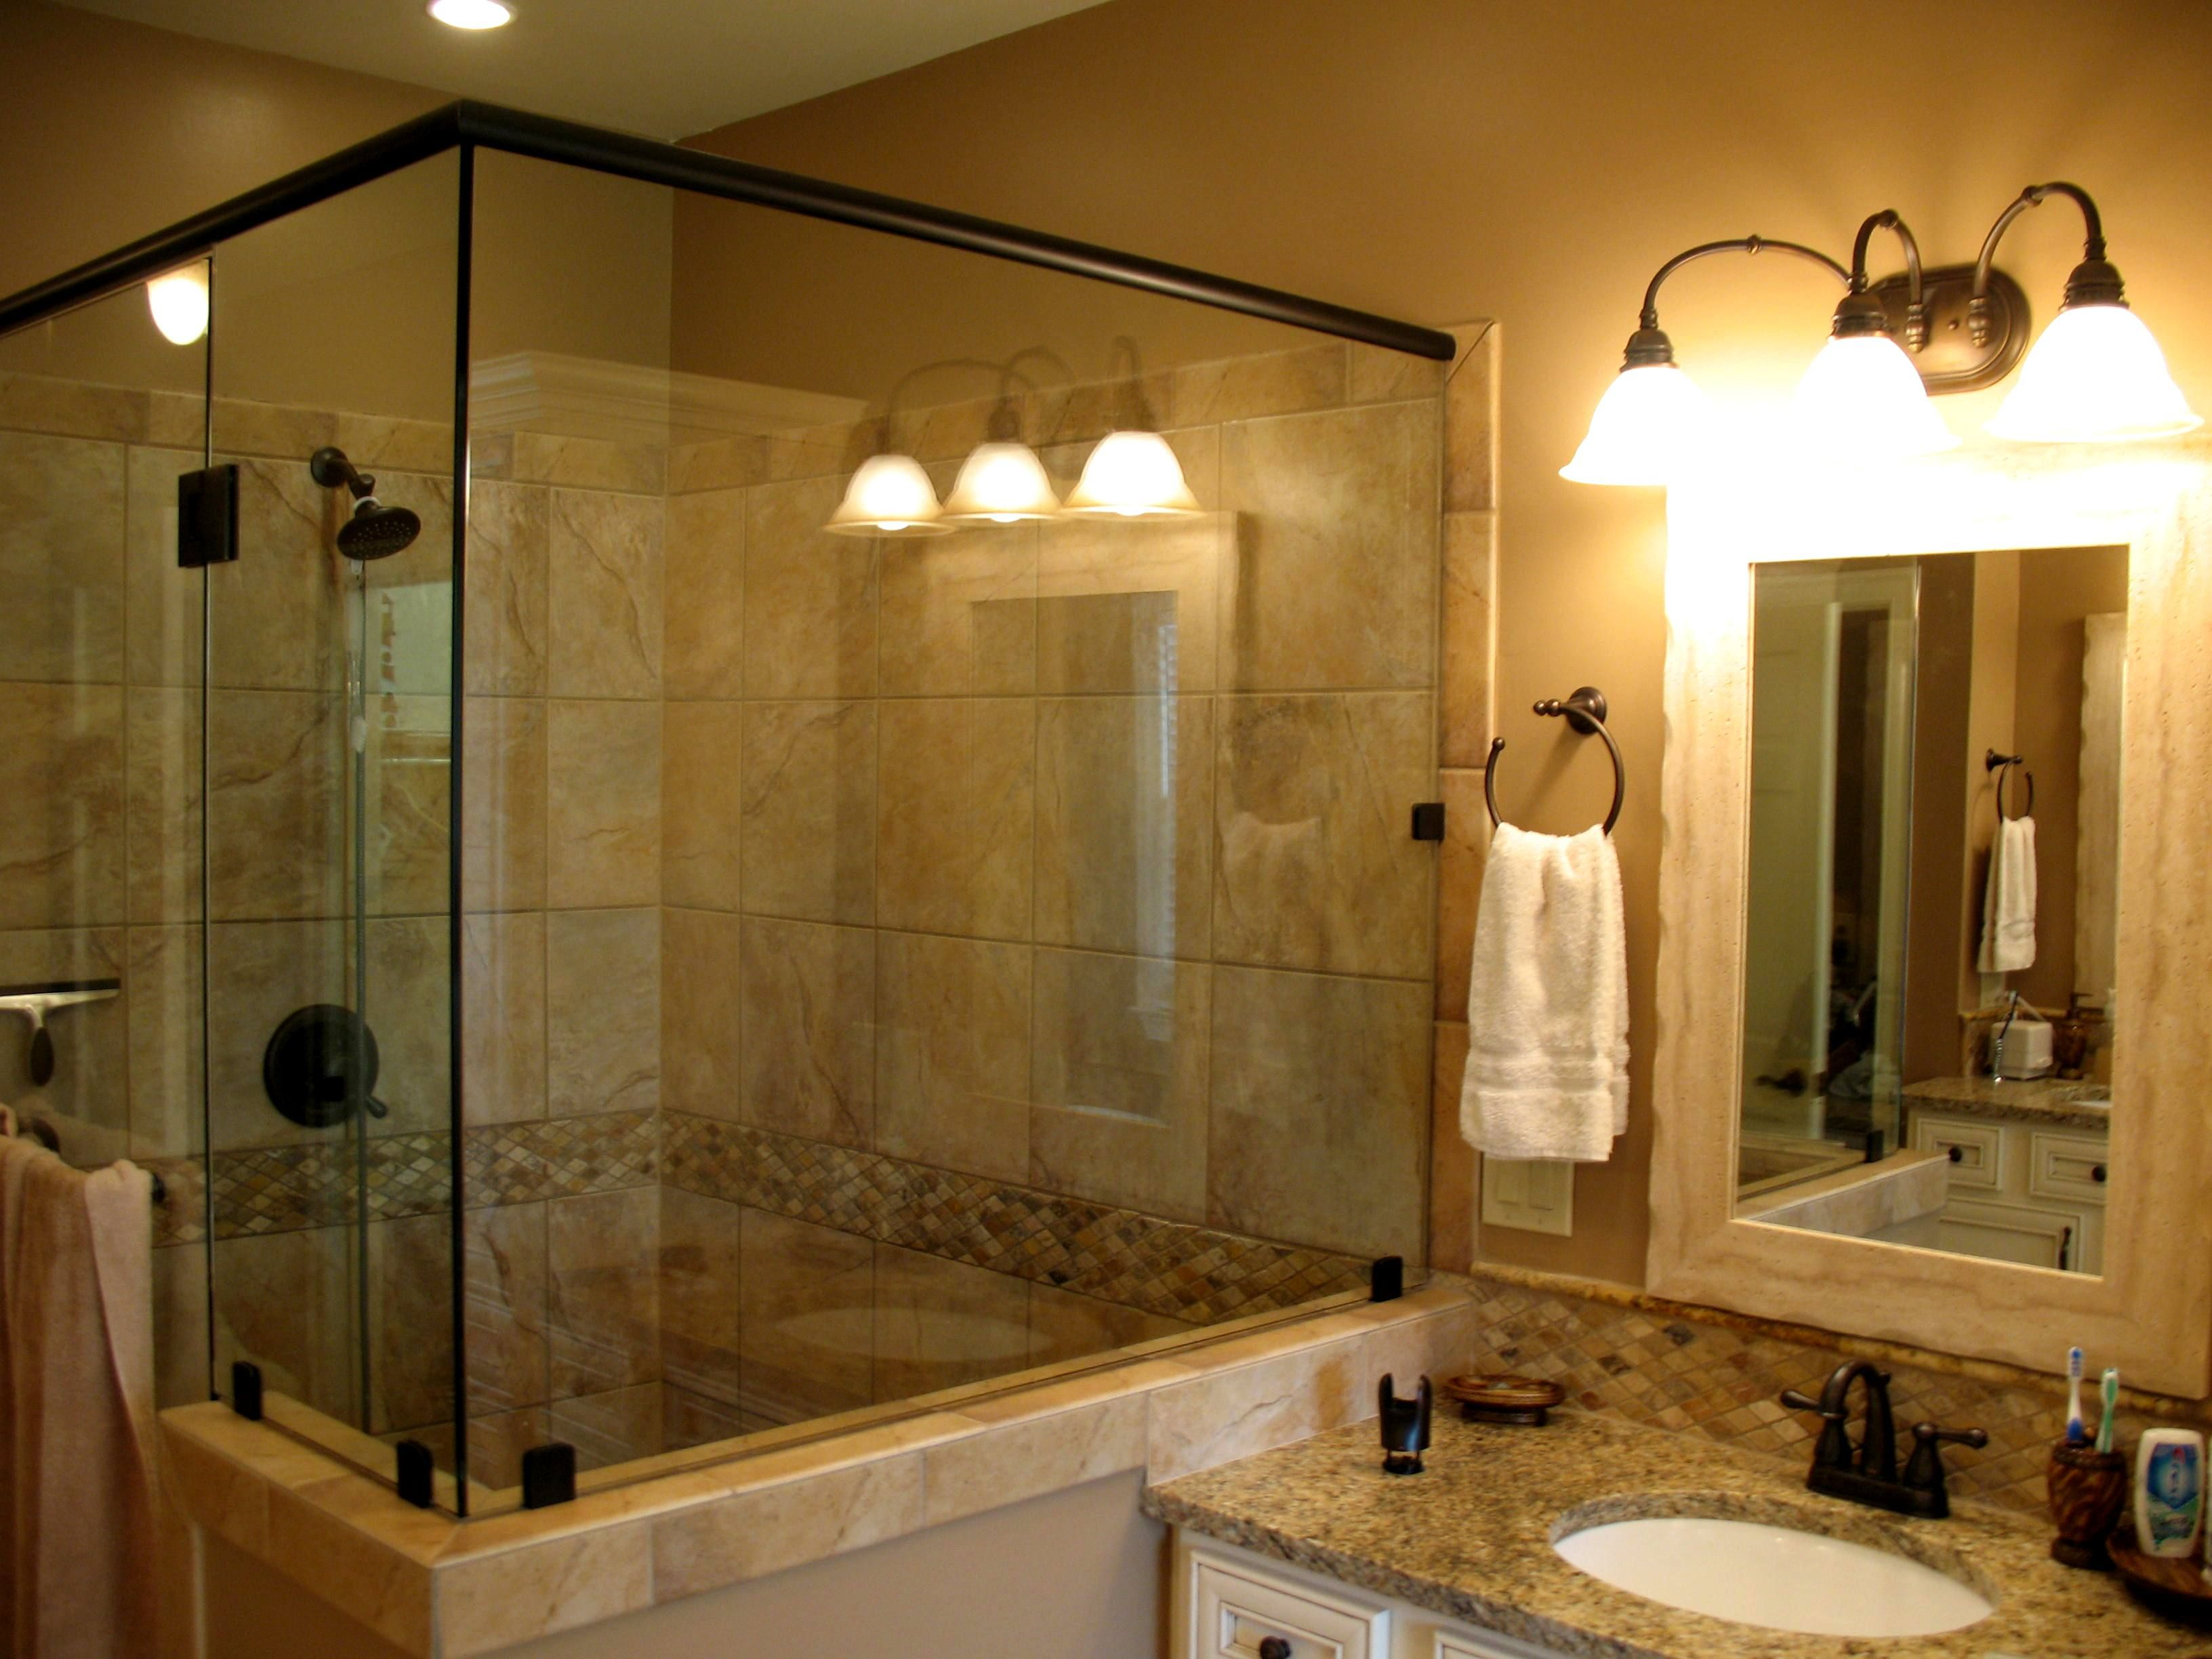 Impact Remodeling Is The Premier Phoenix Bathroom Remodeling Awesome Phoenix Bathroom Remodeling Inspiration Design